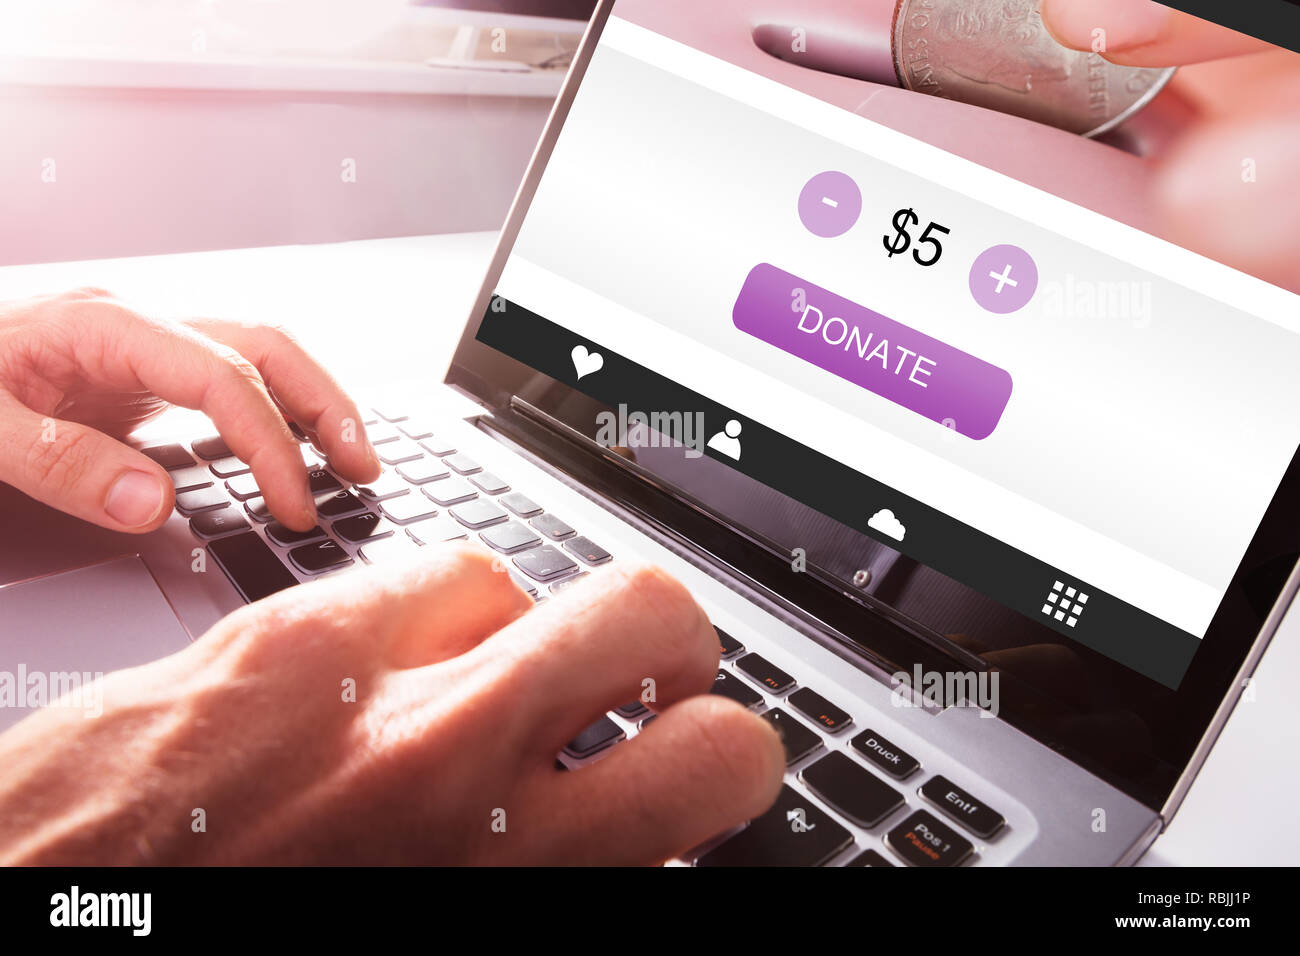 Close-up Of A Man's Hand Using Laptop To Donate Money - Stock Image